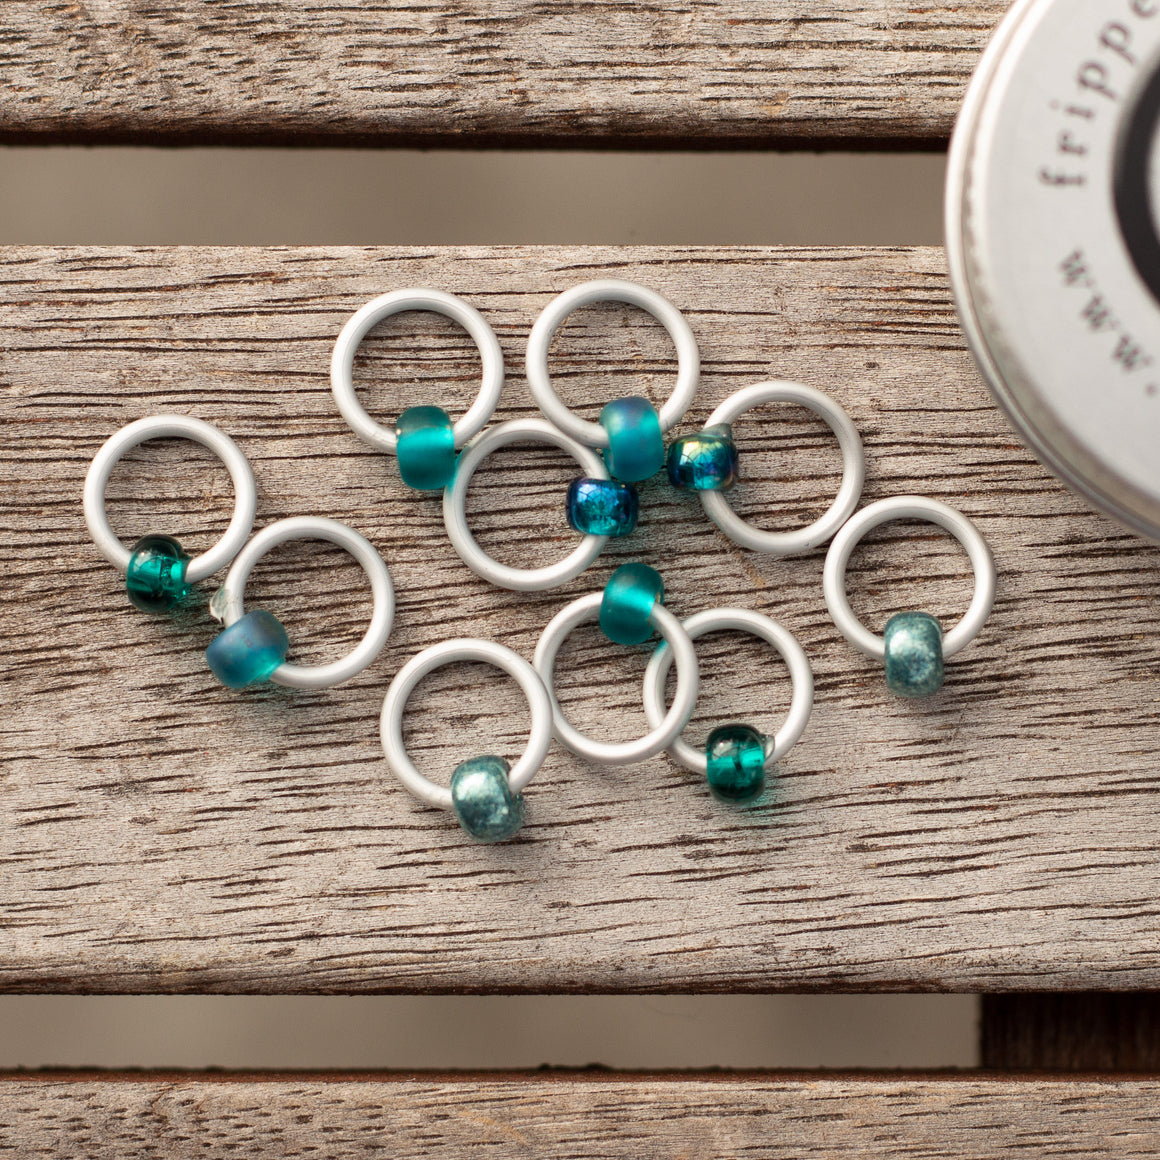 Fripperies & Bibelots RingOs Tealicious Stitch Markers